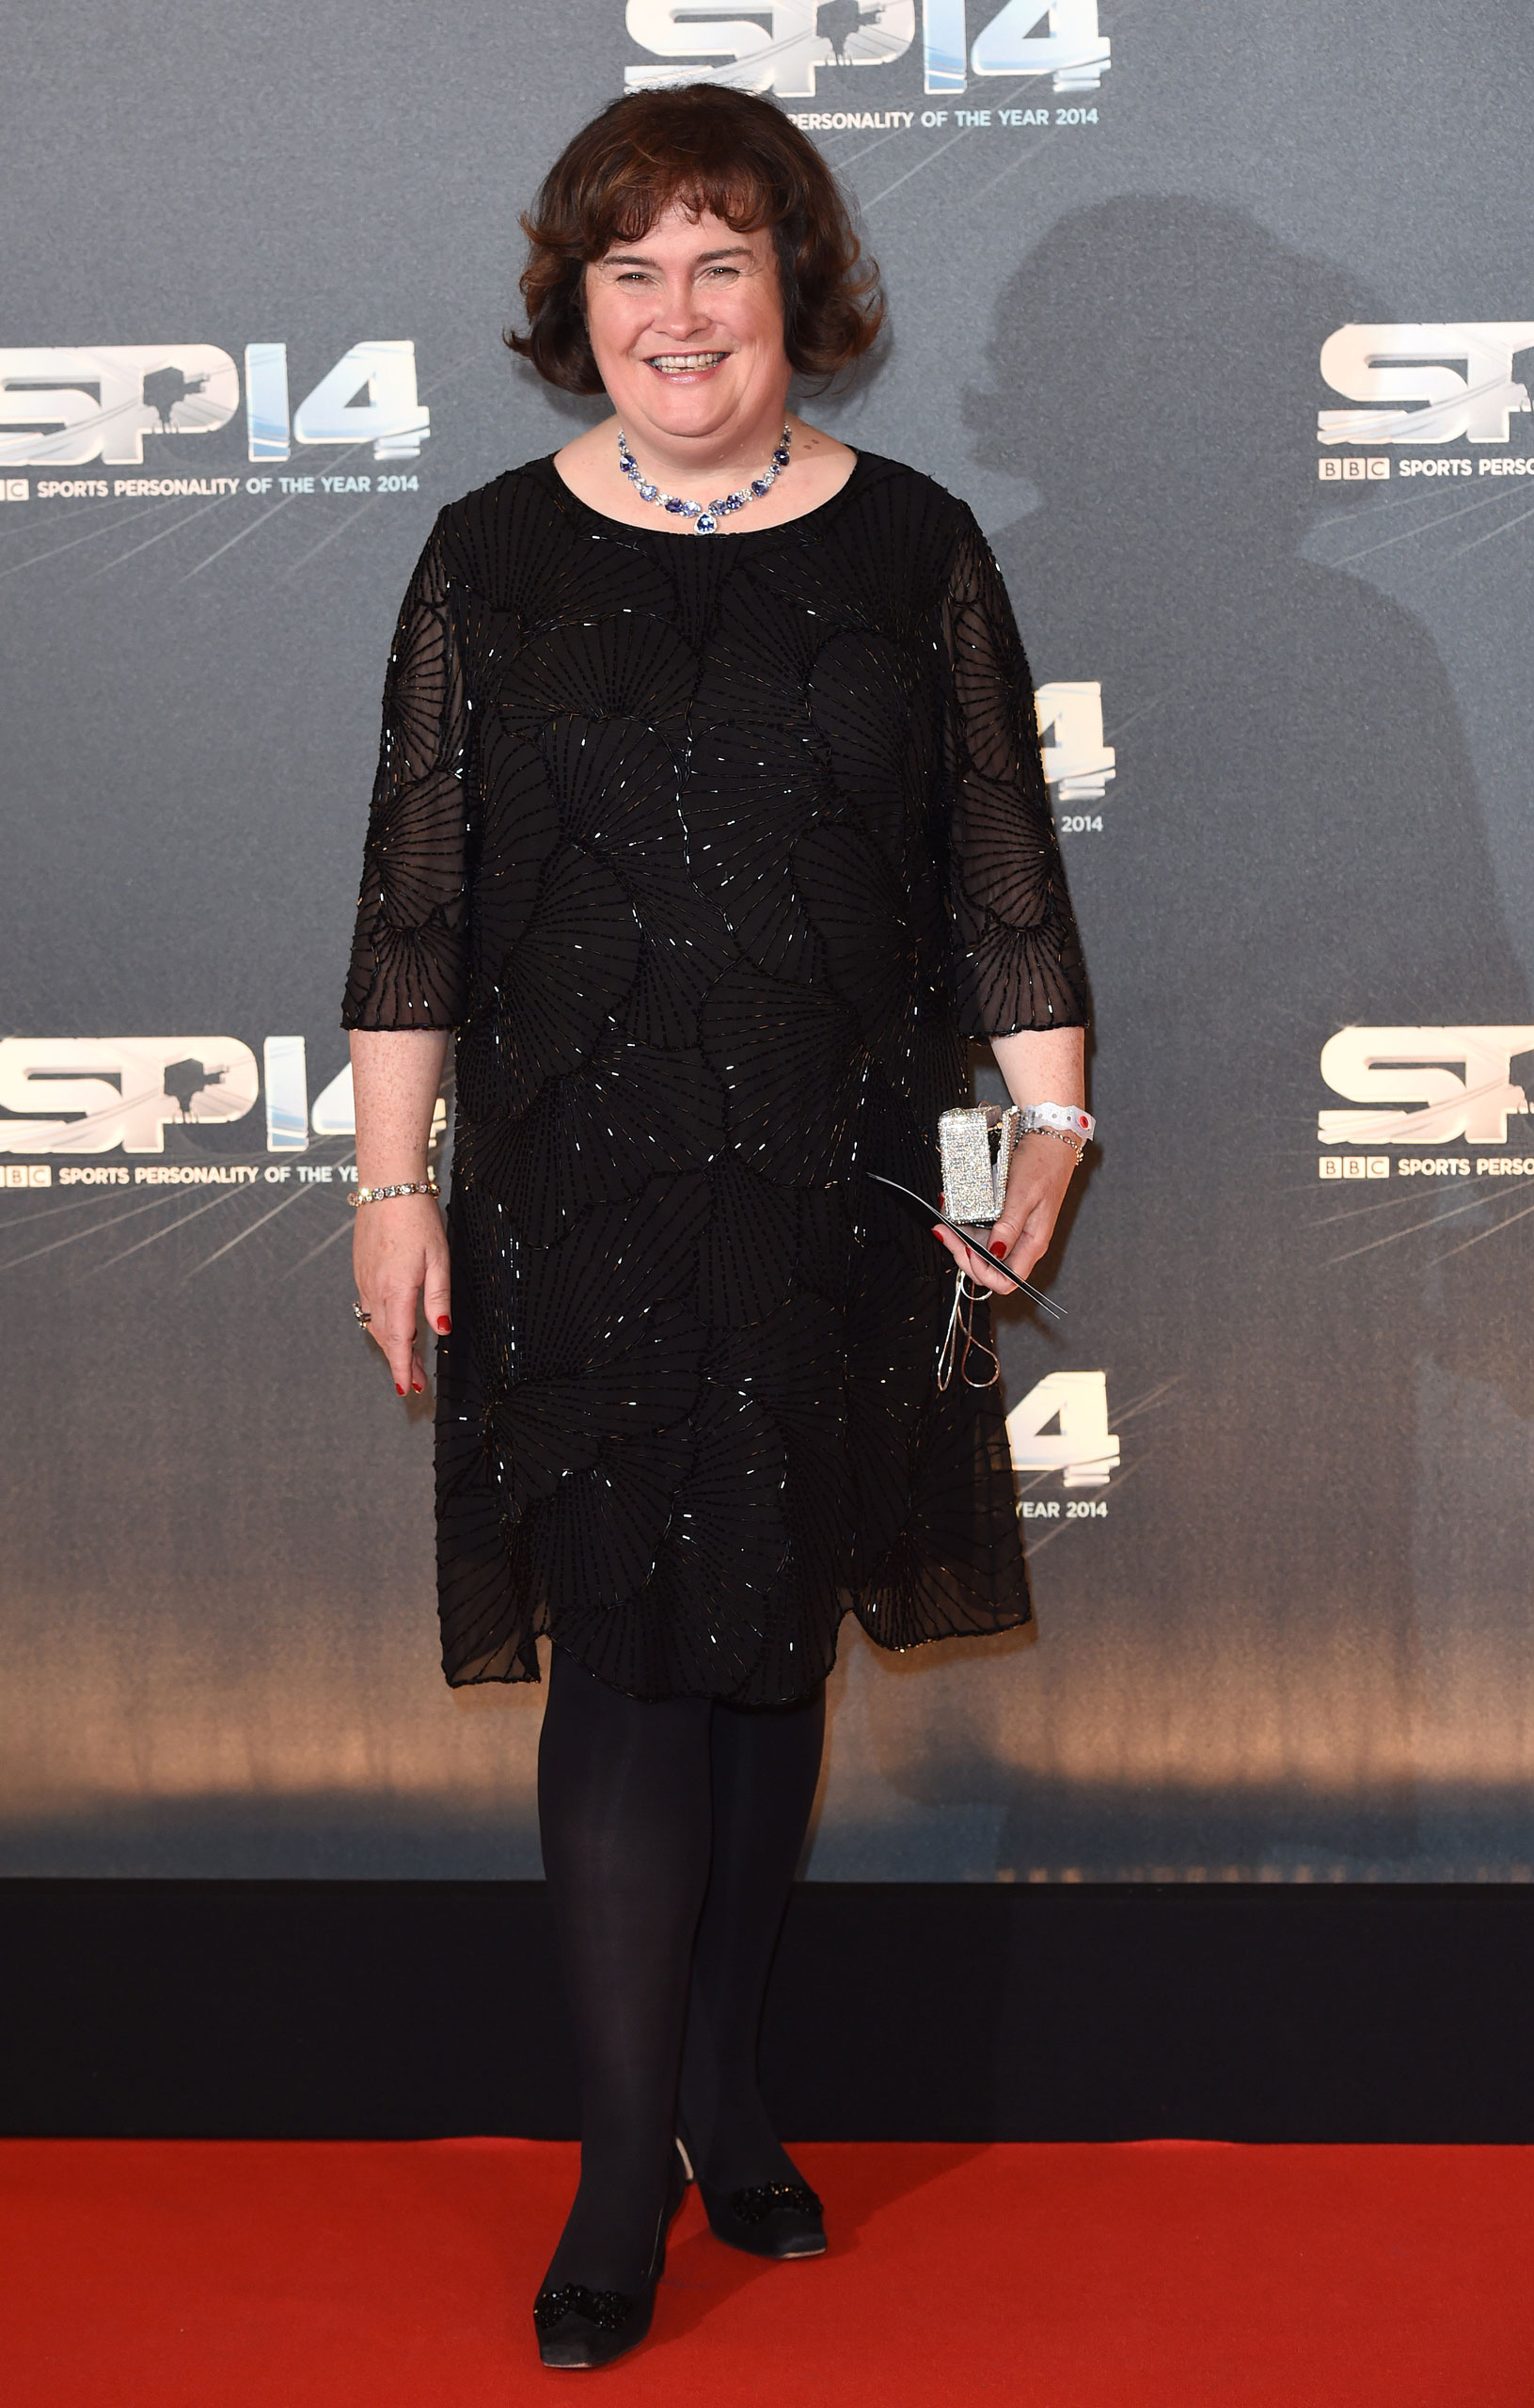 Susan Boyle attends the BBC Sports Personality of the Year awards at The Hydro  in Glasgow, Scotland, on December 14, 2014.